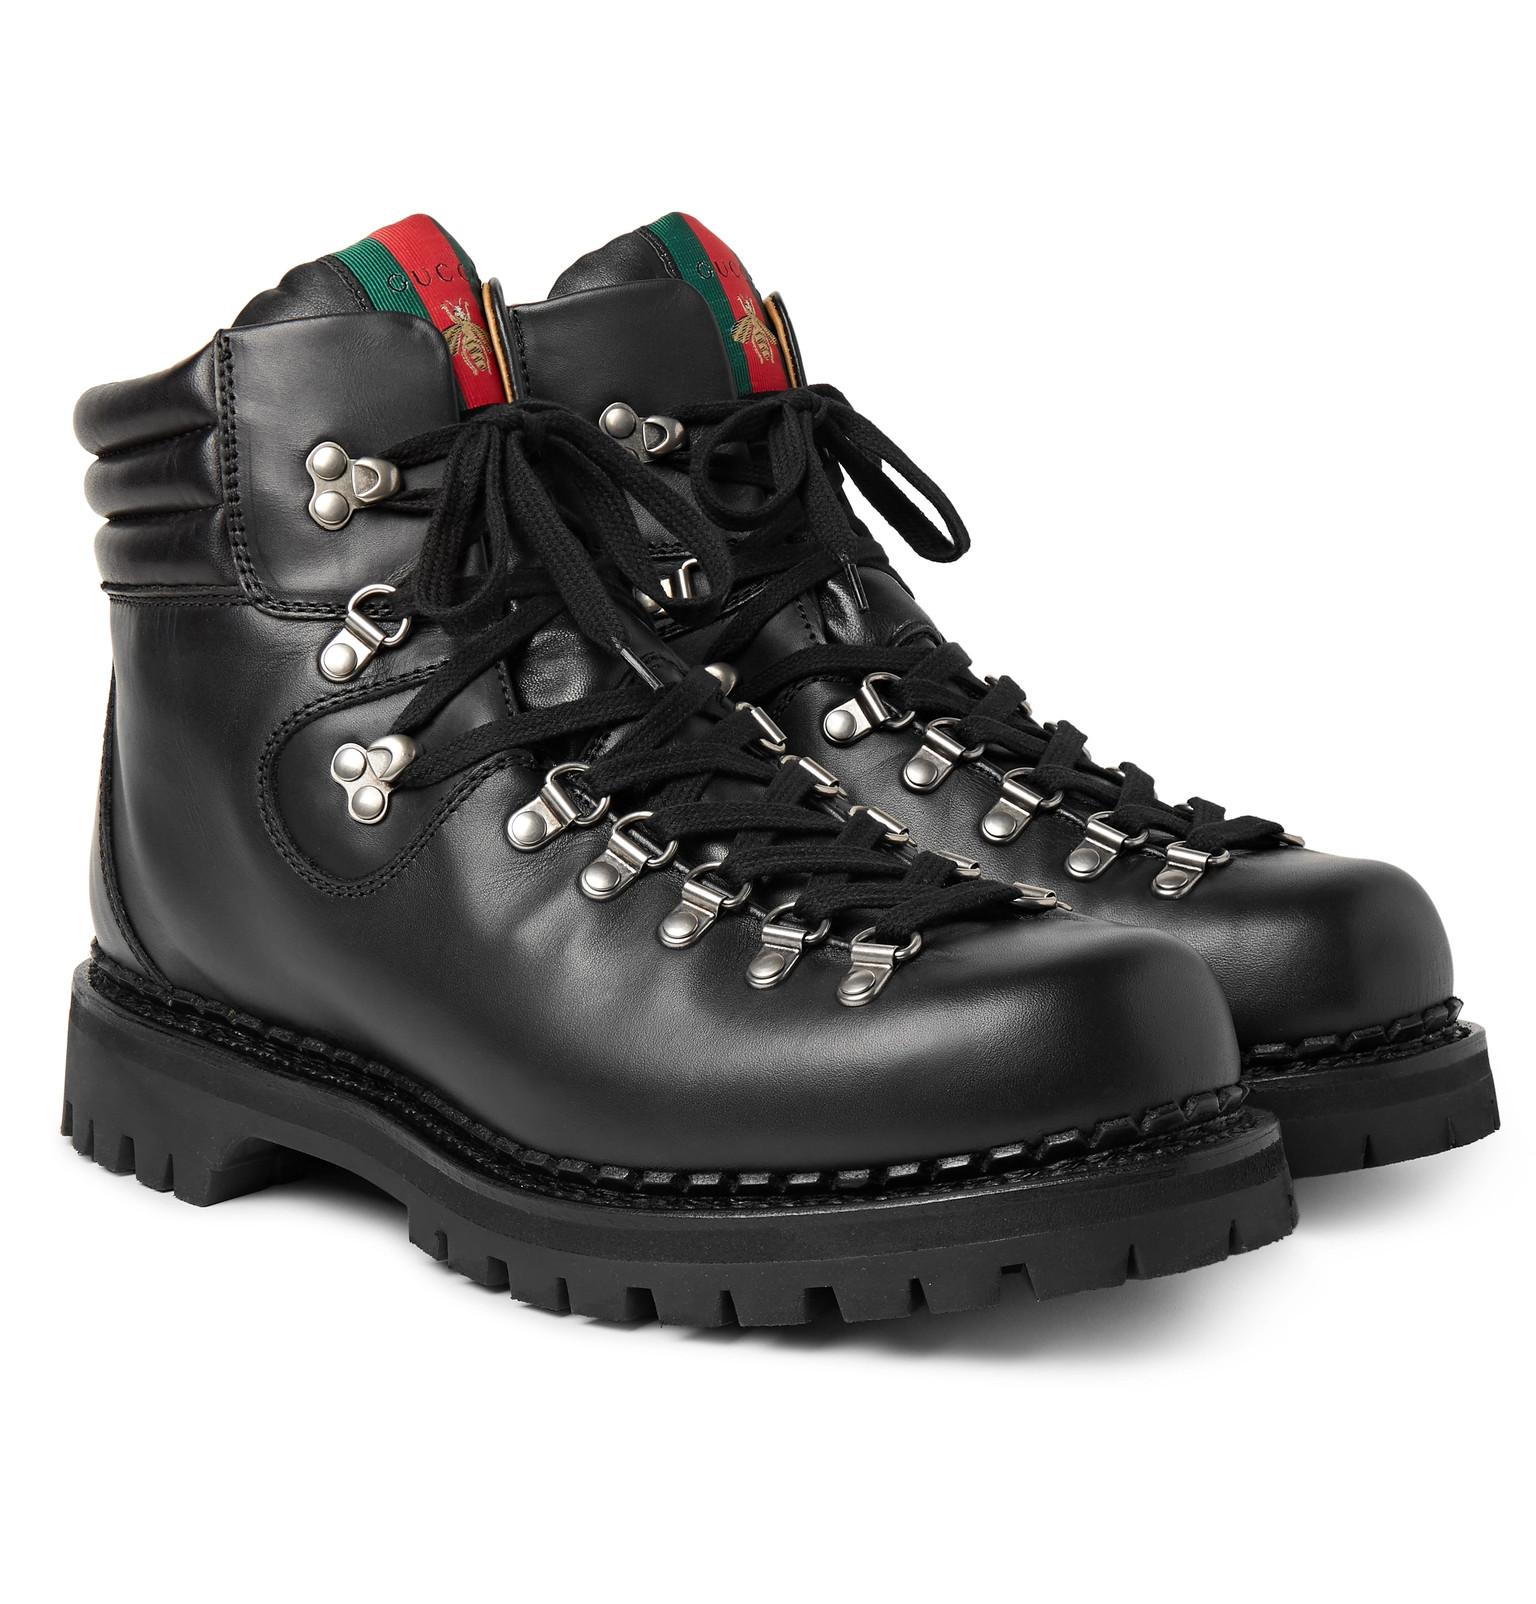 3f670d63f Gucci Tracker Leather Boots in Black for Men - Lyst